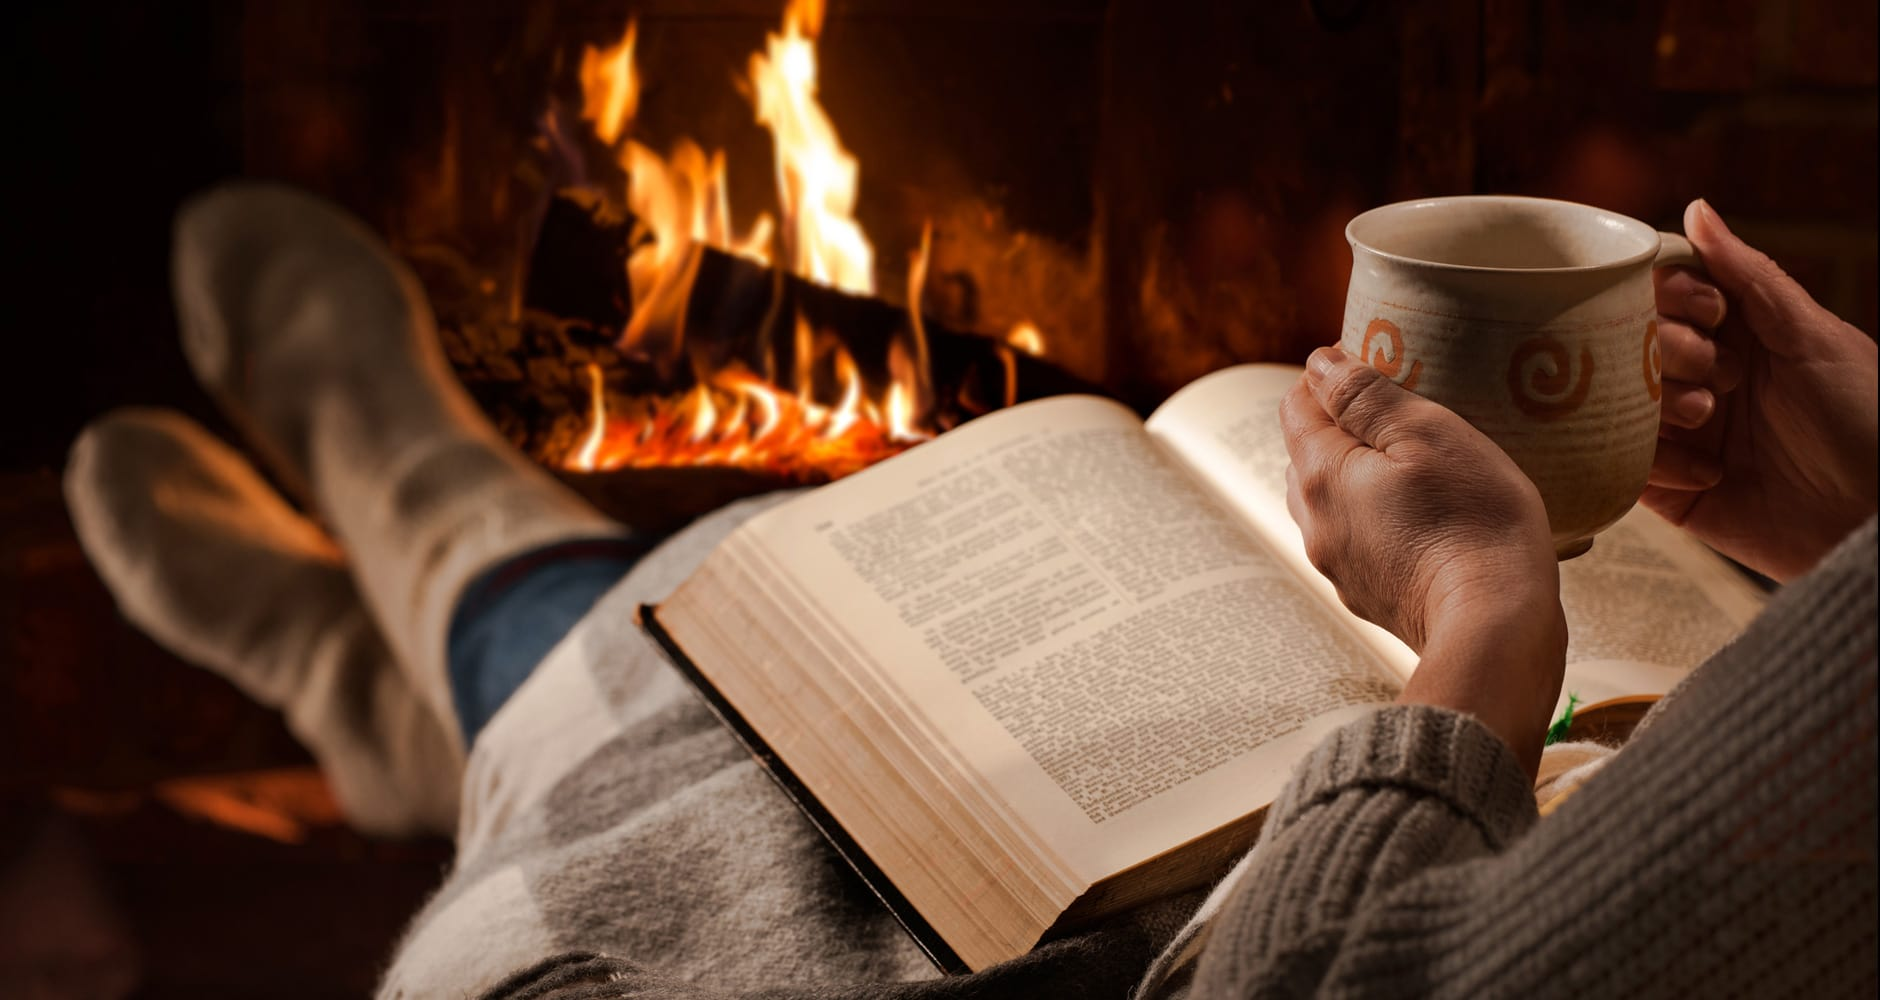 What The Heck is Hygge? - Farmers' Almanac